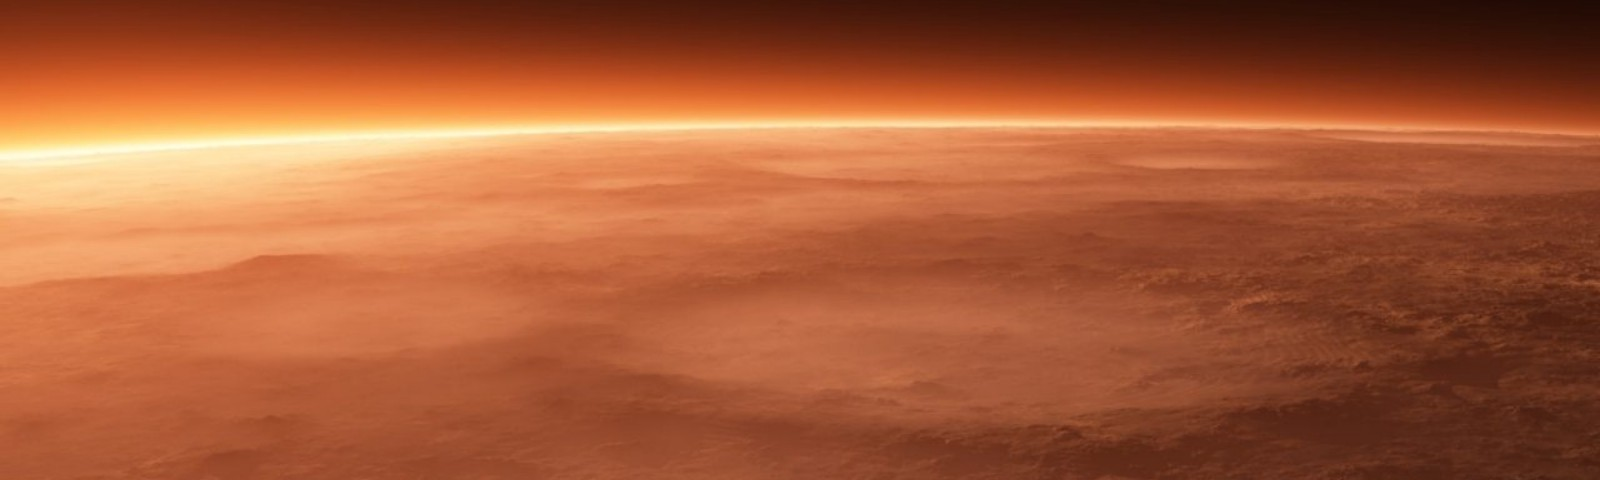 NASA Plans To Create Oxygen On Mars By 2020